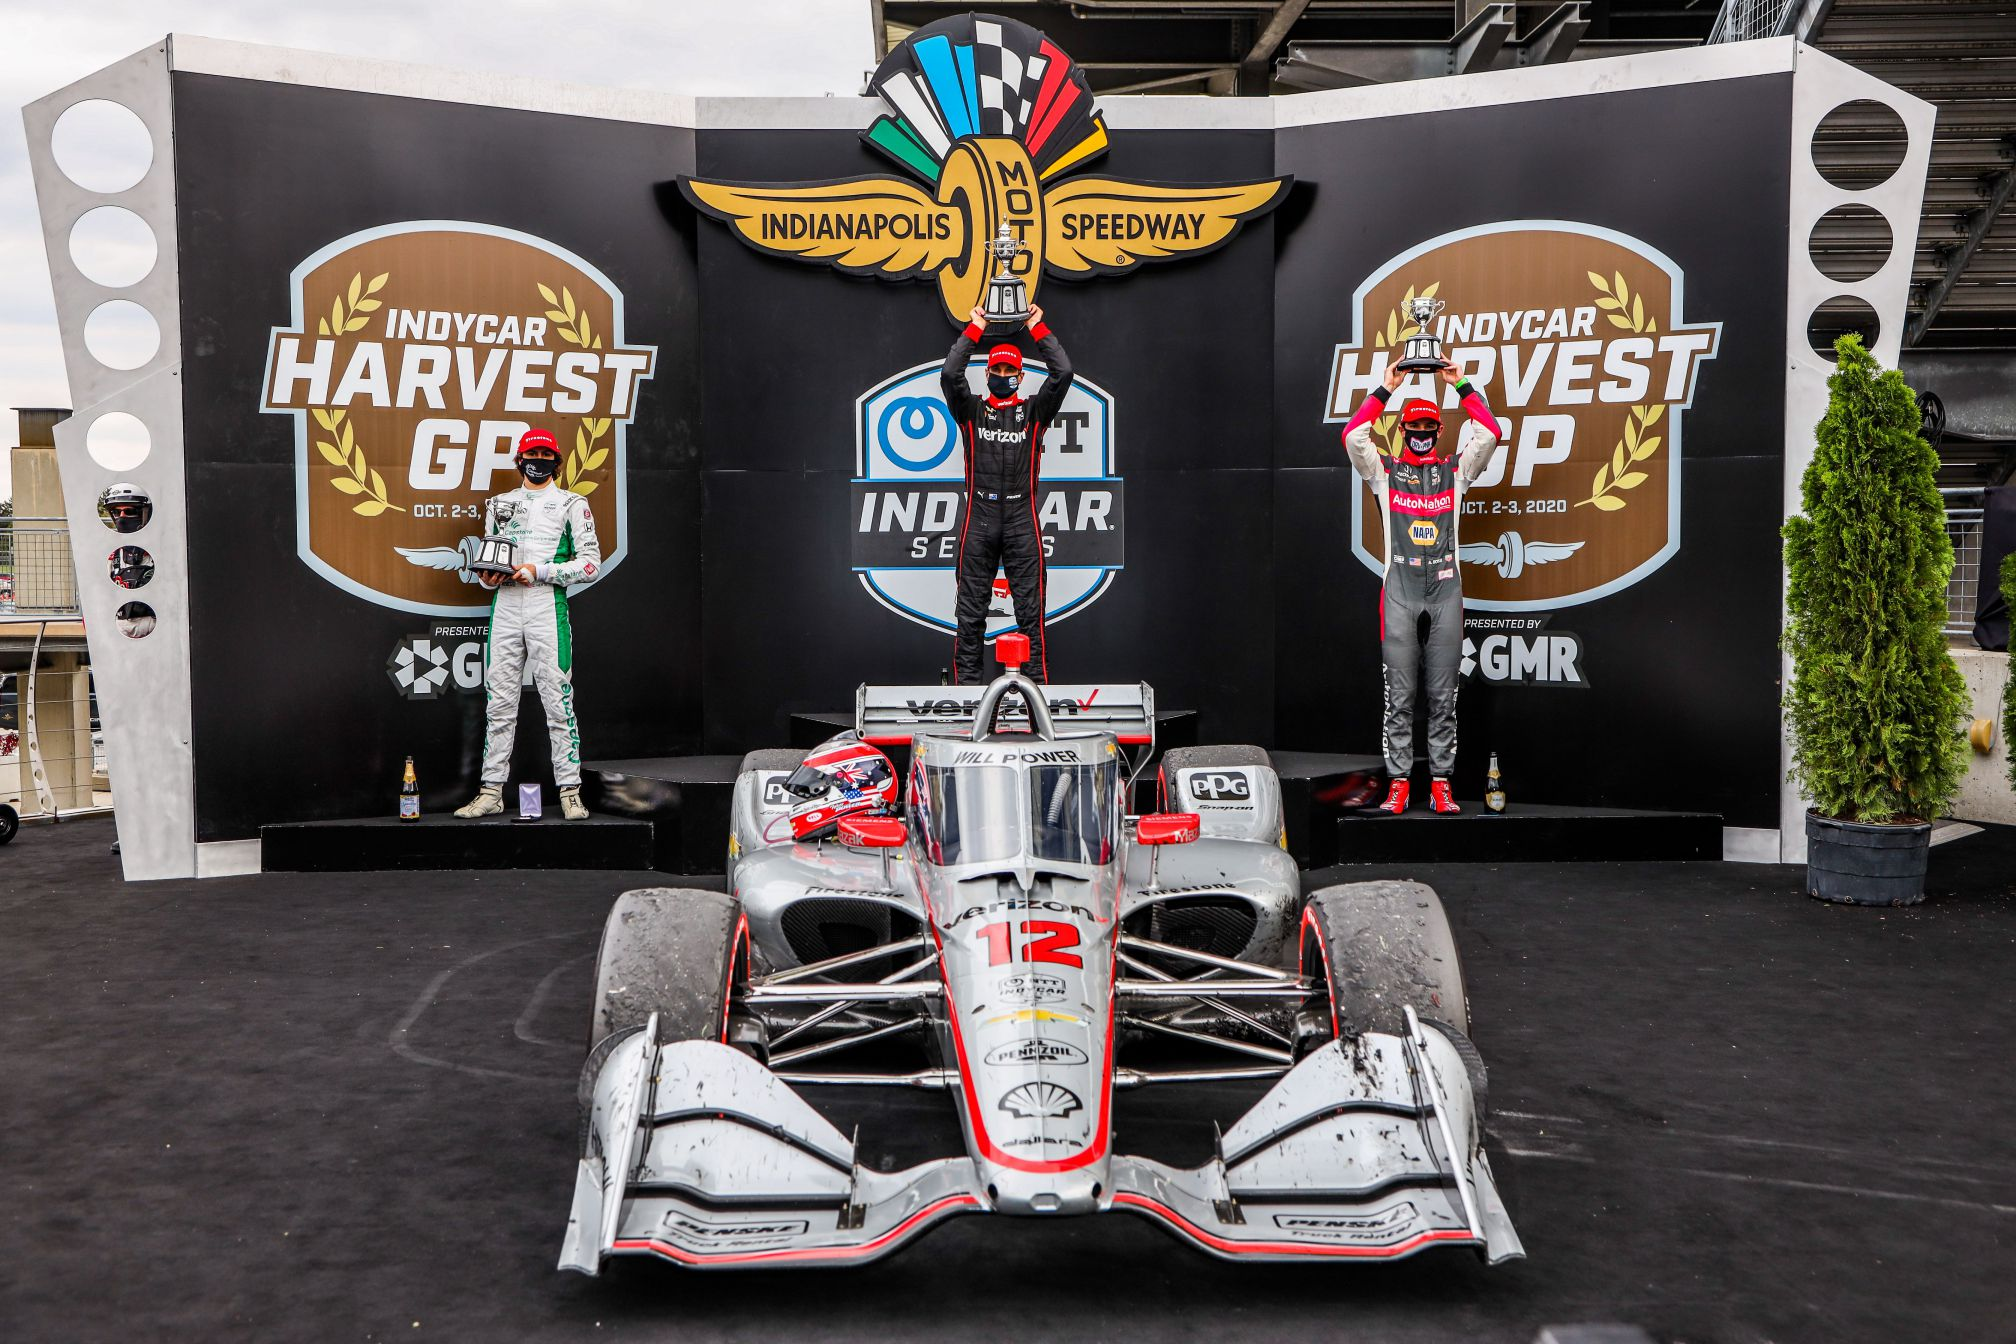 INDYCAR Harvest GP Race 2 podium: Colton Herta (2nd), Will Power (winner) and Alexander Rossi (3rd). © [Andy Clary/ Spacesuit Media]